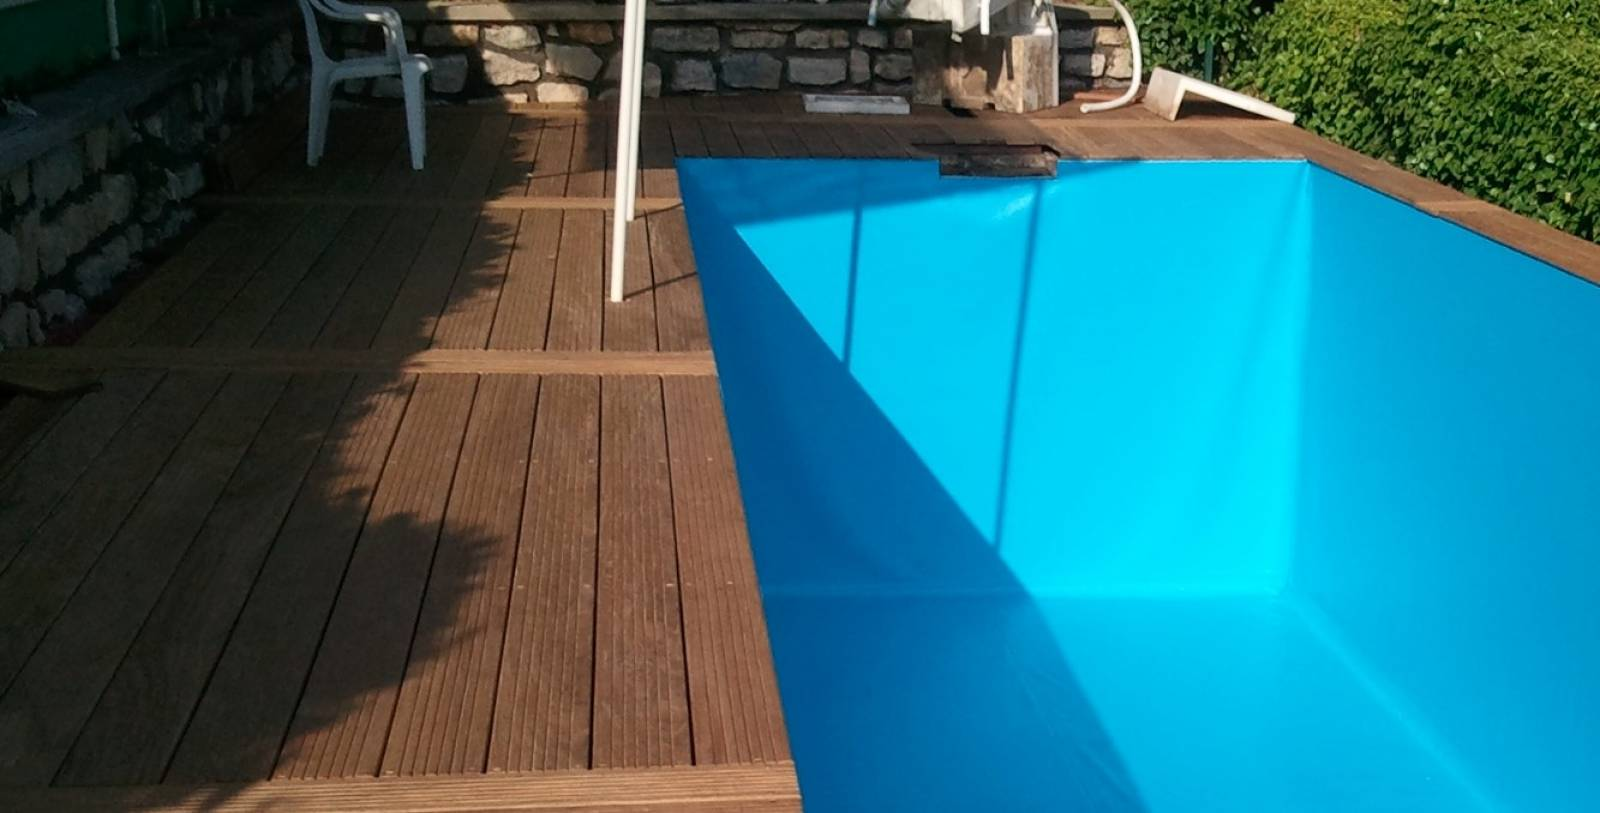 Pose de pvc arm jce piscines for Prix pose pvc arme piscine